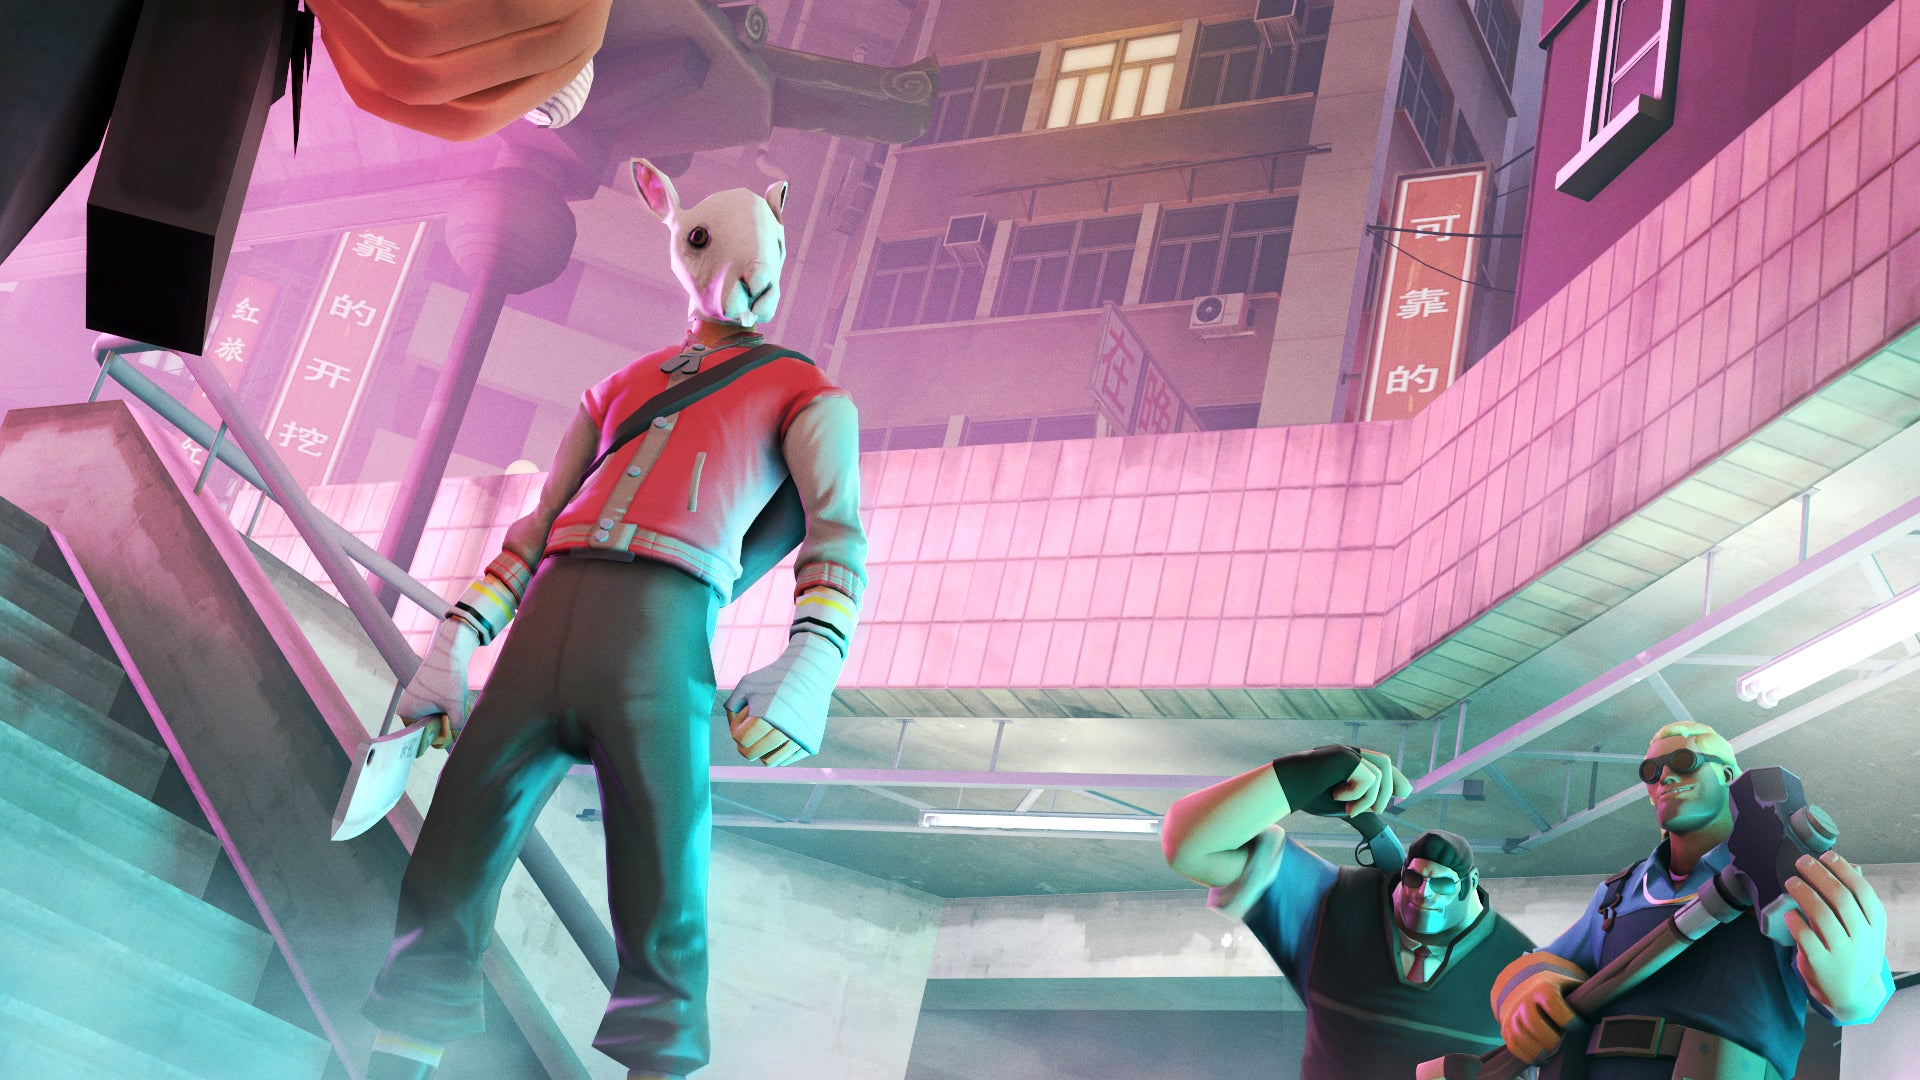 Yhrite's Latest Source Filmmaker Creation Crosses Team Fortress 2 And Hotline Miami